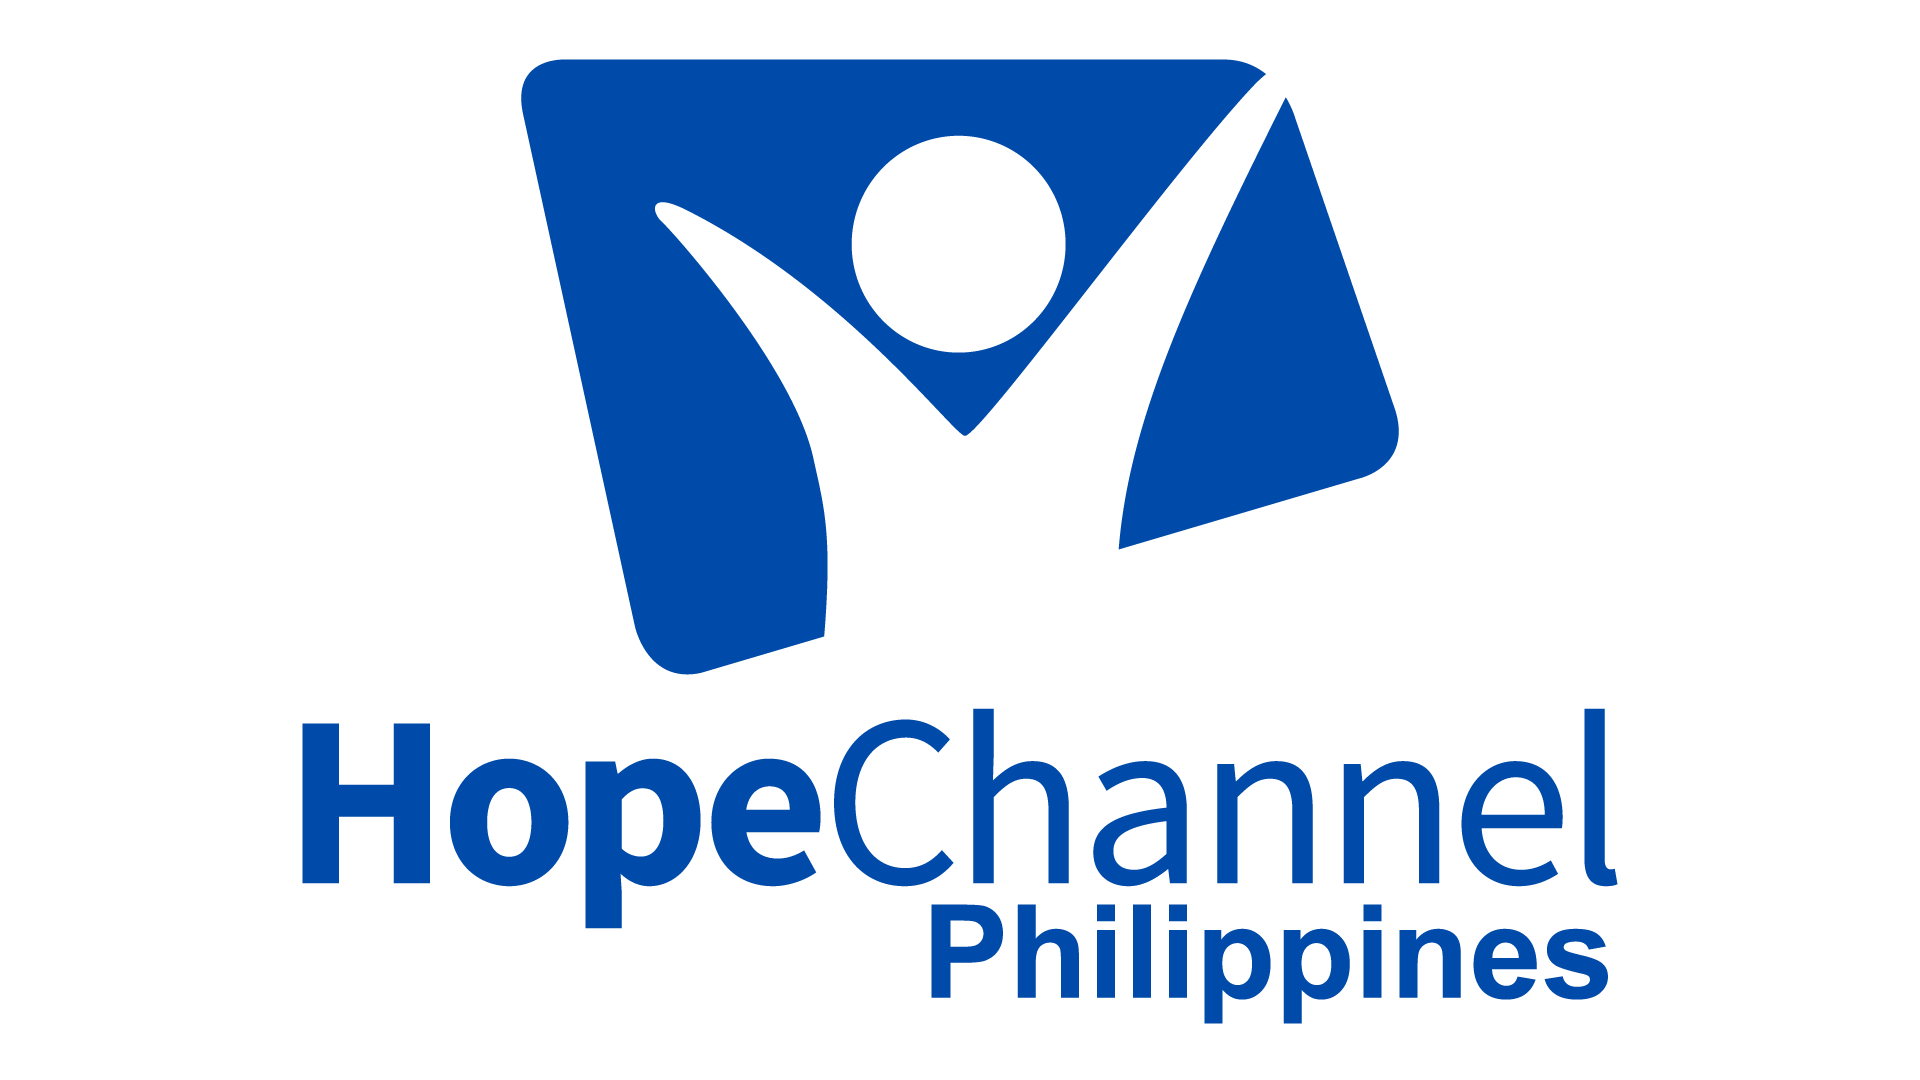 Hope Channel Philippines Live TV, Online